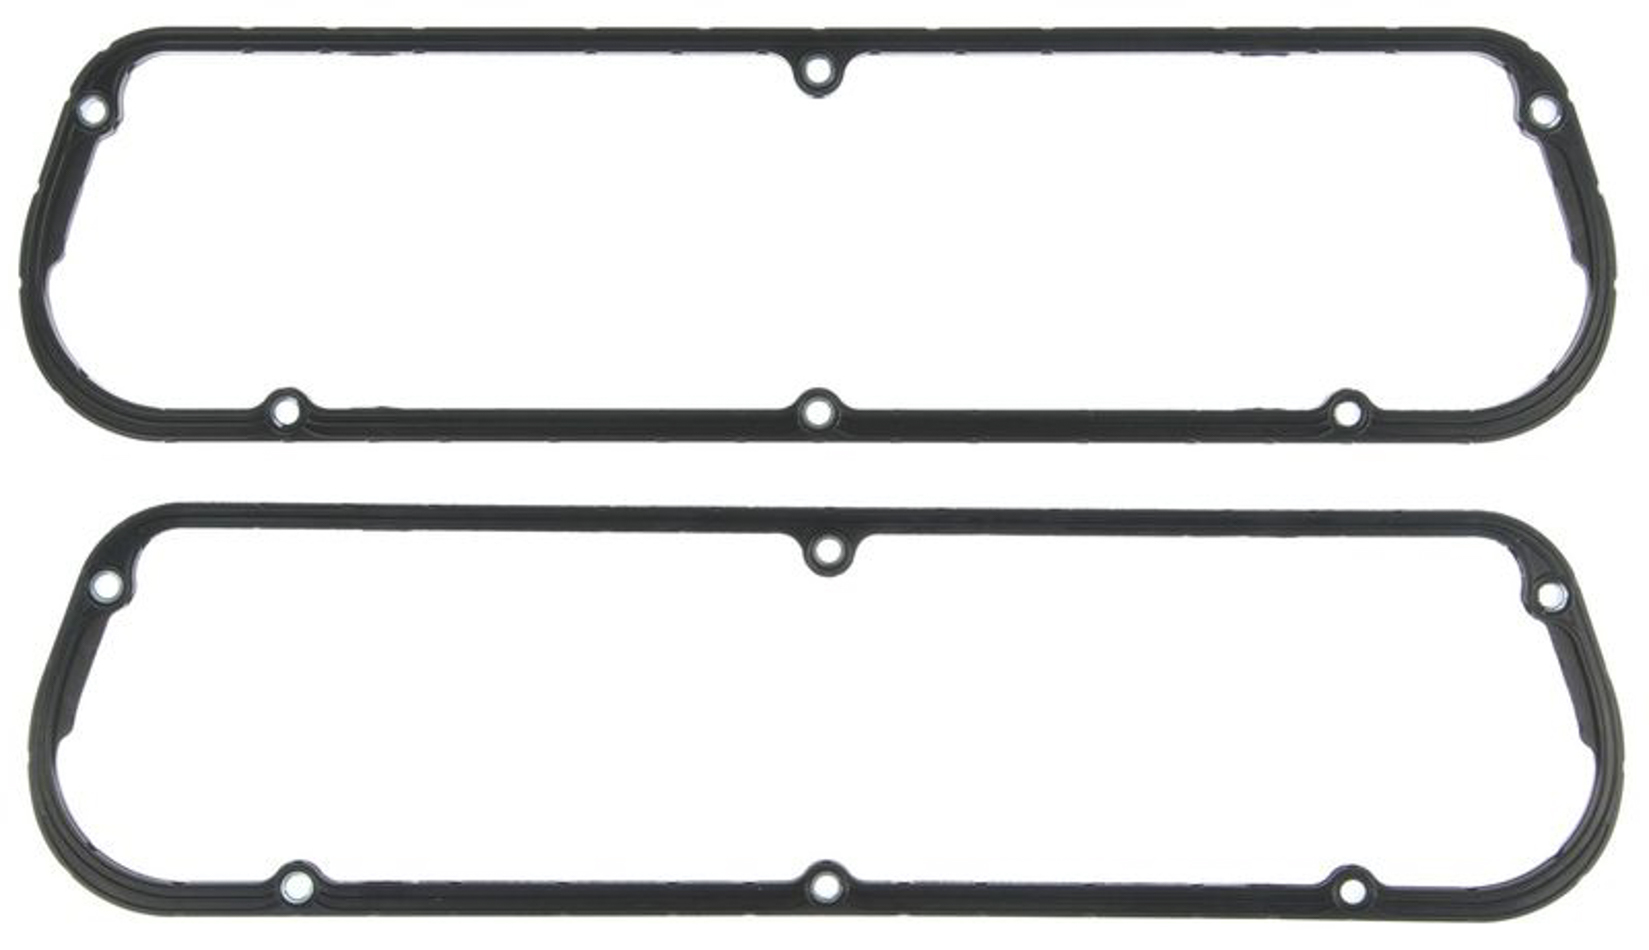 Michigan 77 VS50756 Valve Cover Gasket, 0.225 in Thick, Steel Core Silicone Rubber, Small Block Ford, Pair